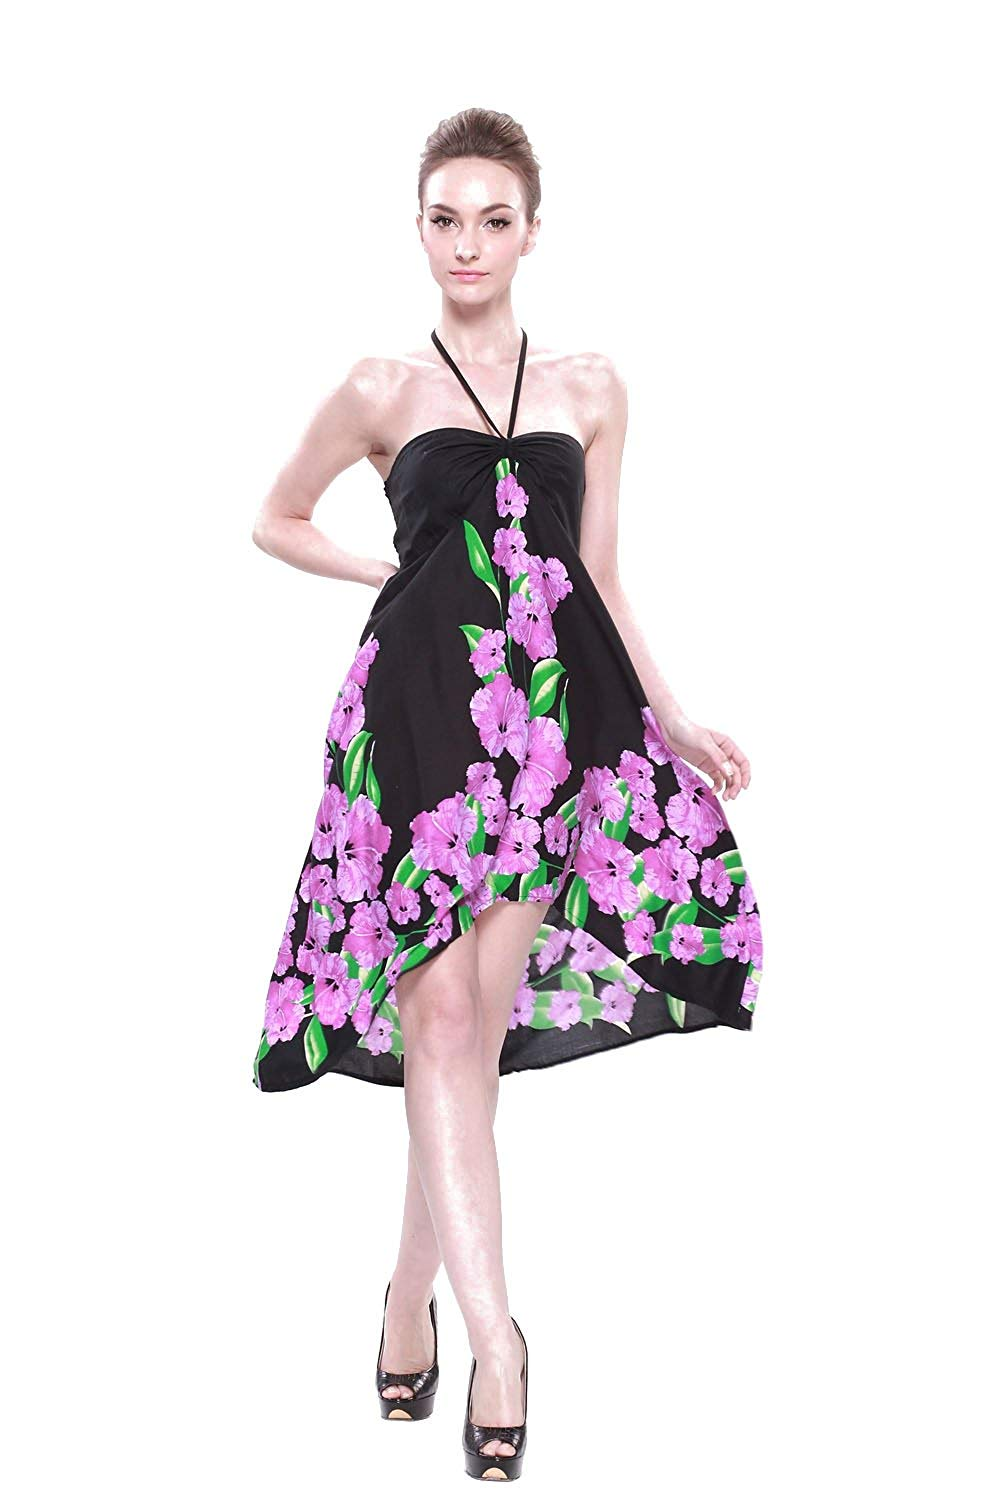 abea514e081e1 Get Quotations · LLJ Hawaii Women's Hawaiian Butterfly Dress in Black with  Purple Hibiscus Print